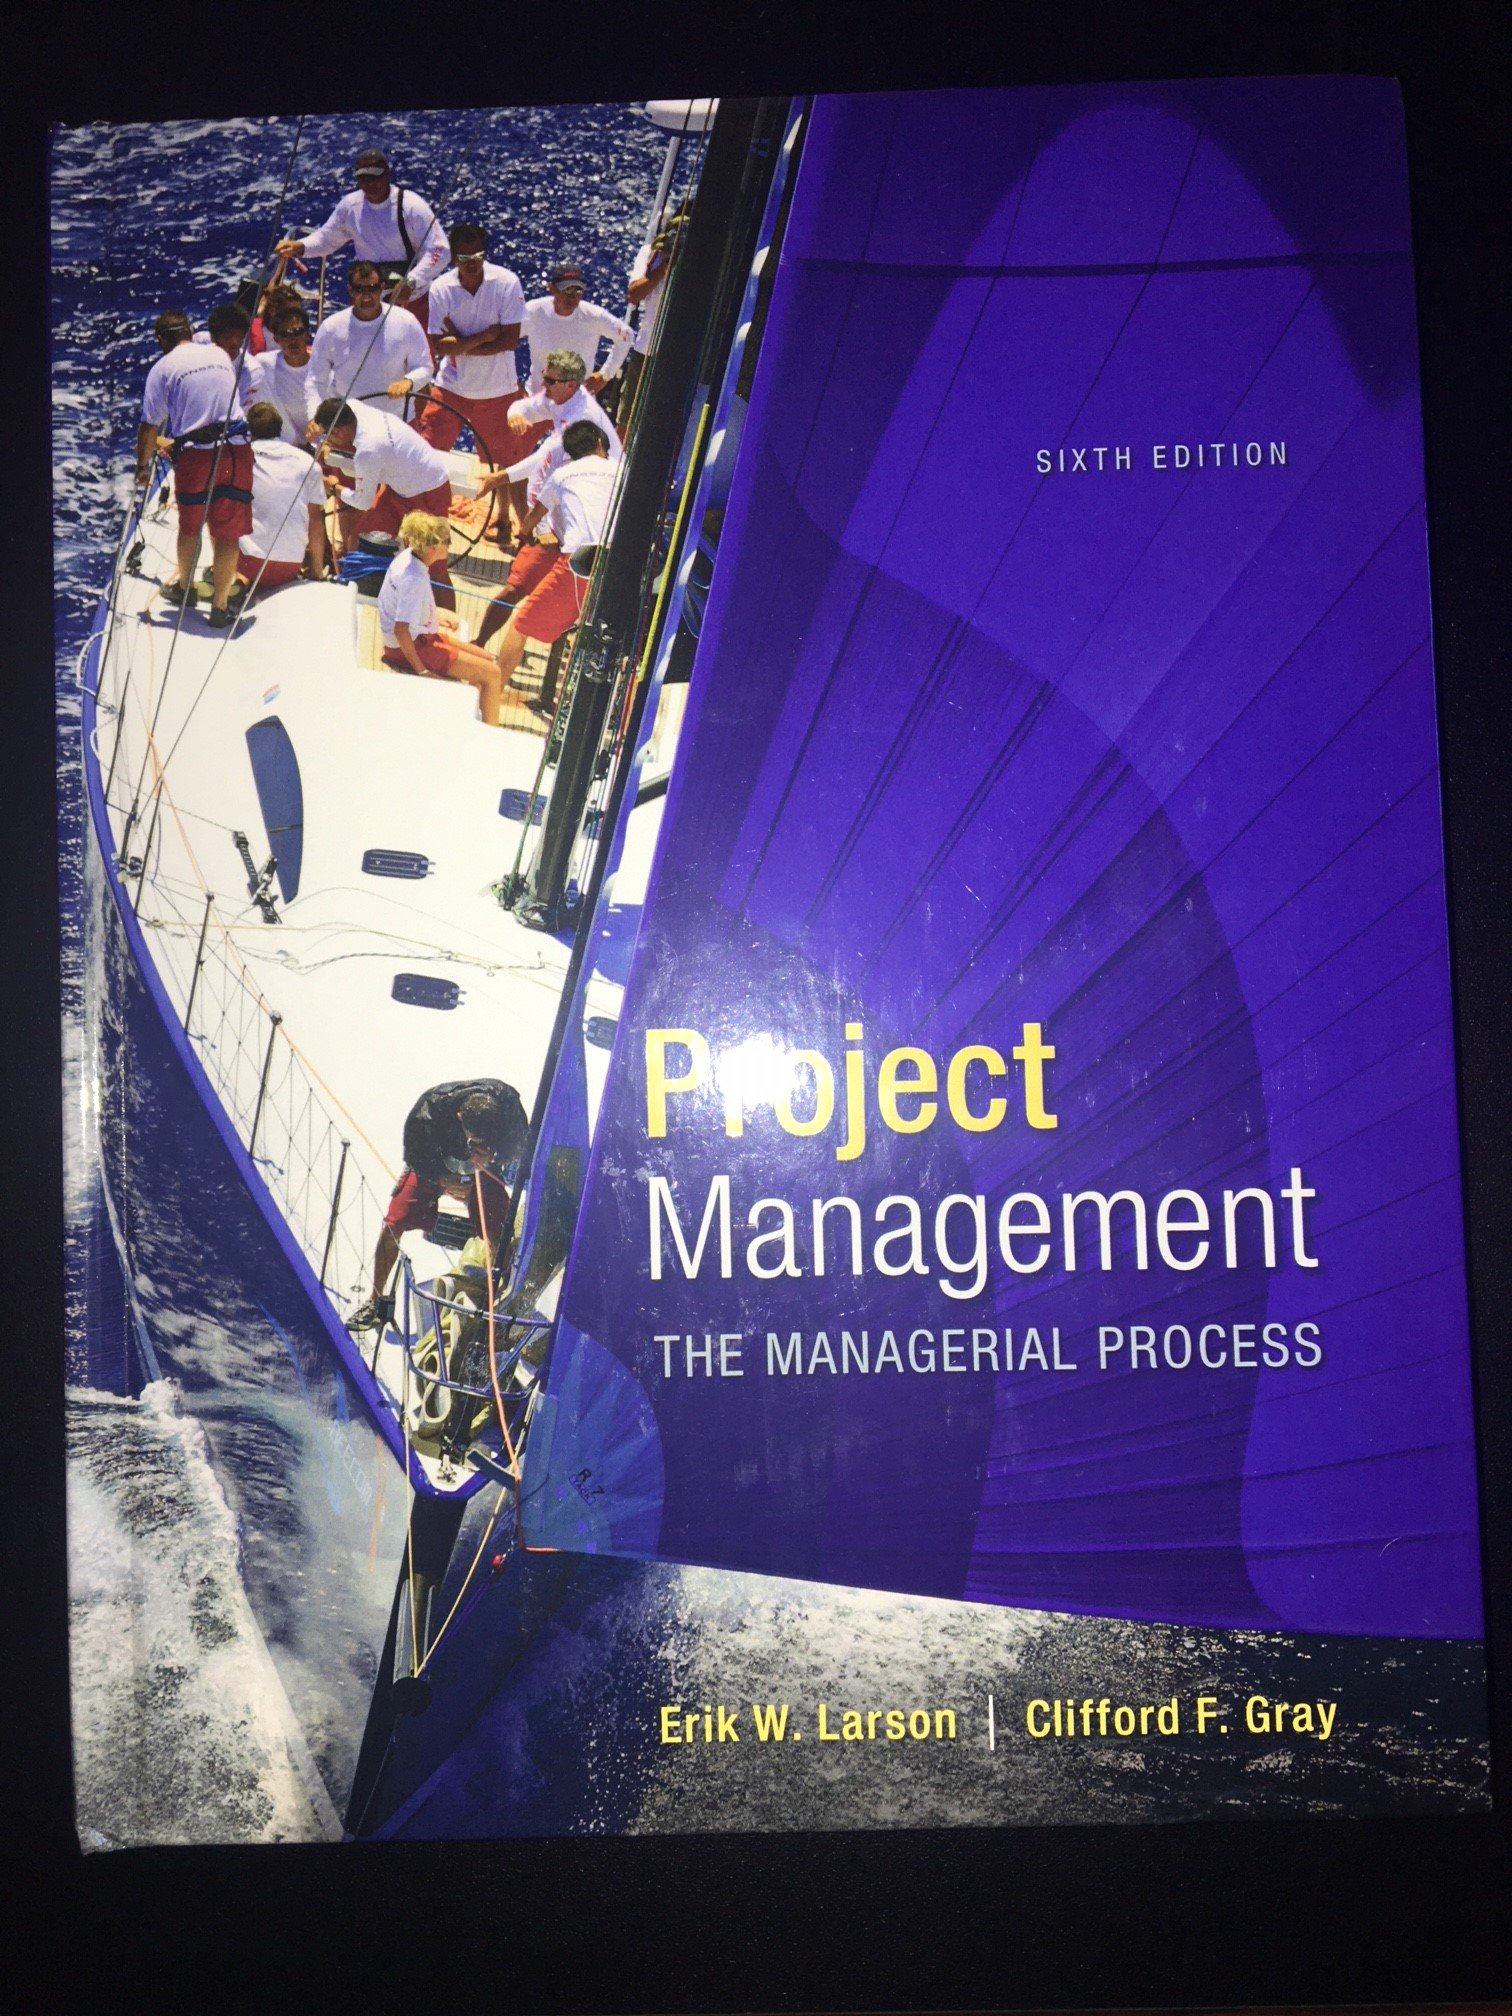 Project management the managerial process mcgraw hill series project management the managerial process mcgraw hill series operations and decision sciences clifford f gray erik w larson 9780078096594 fandeluxe Images